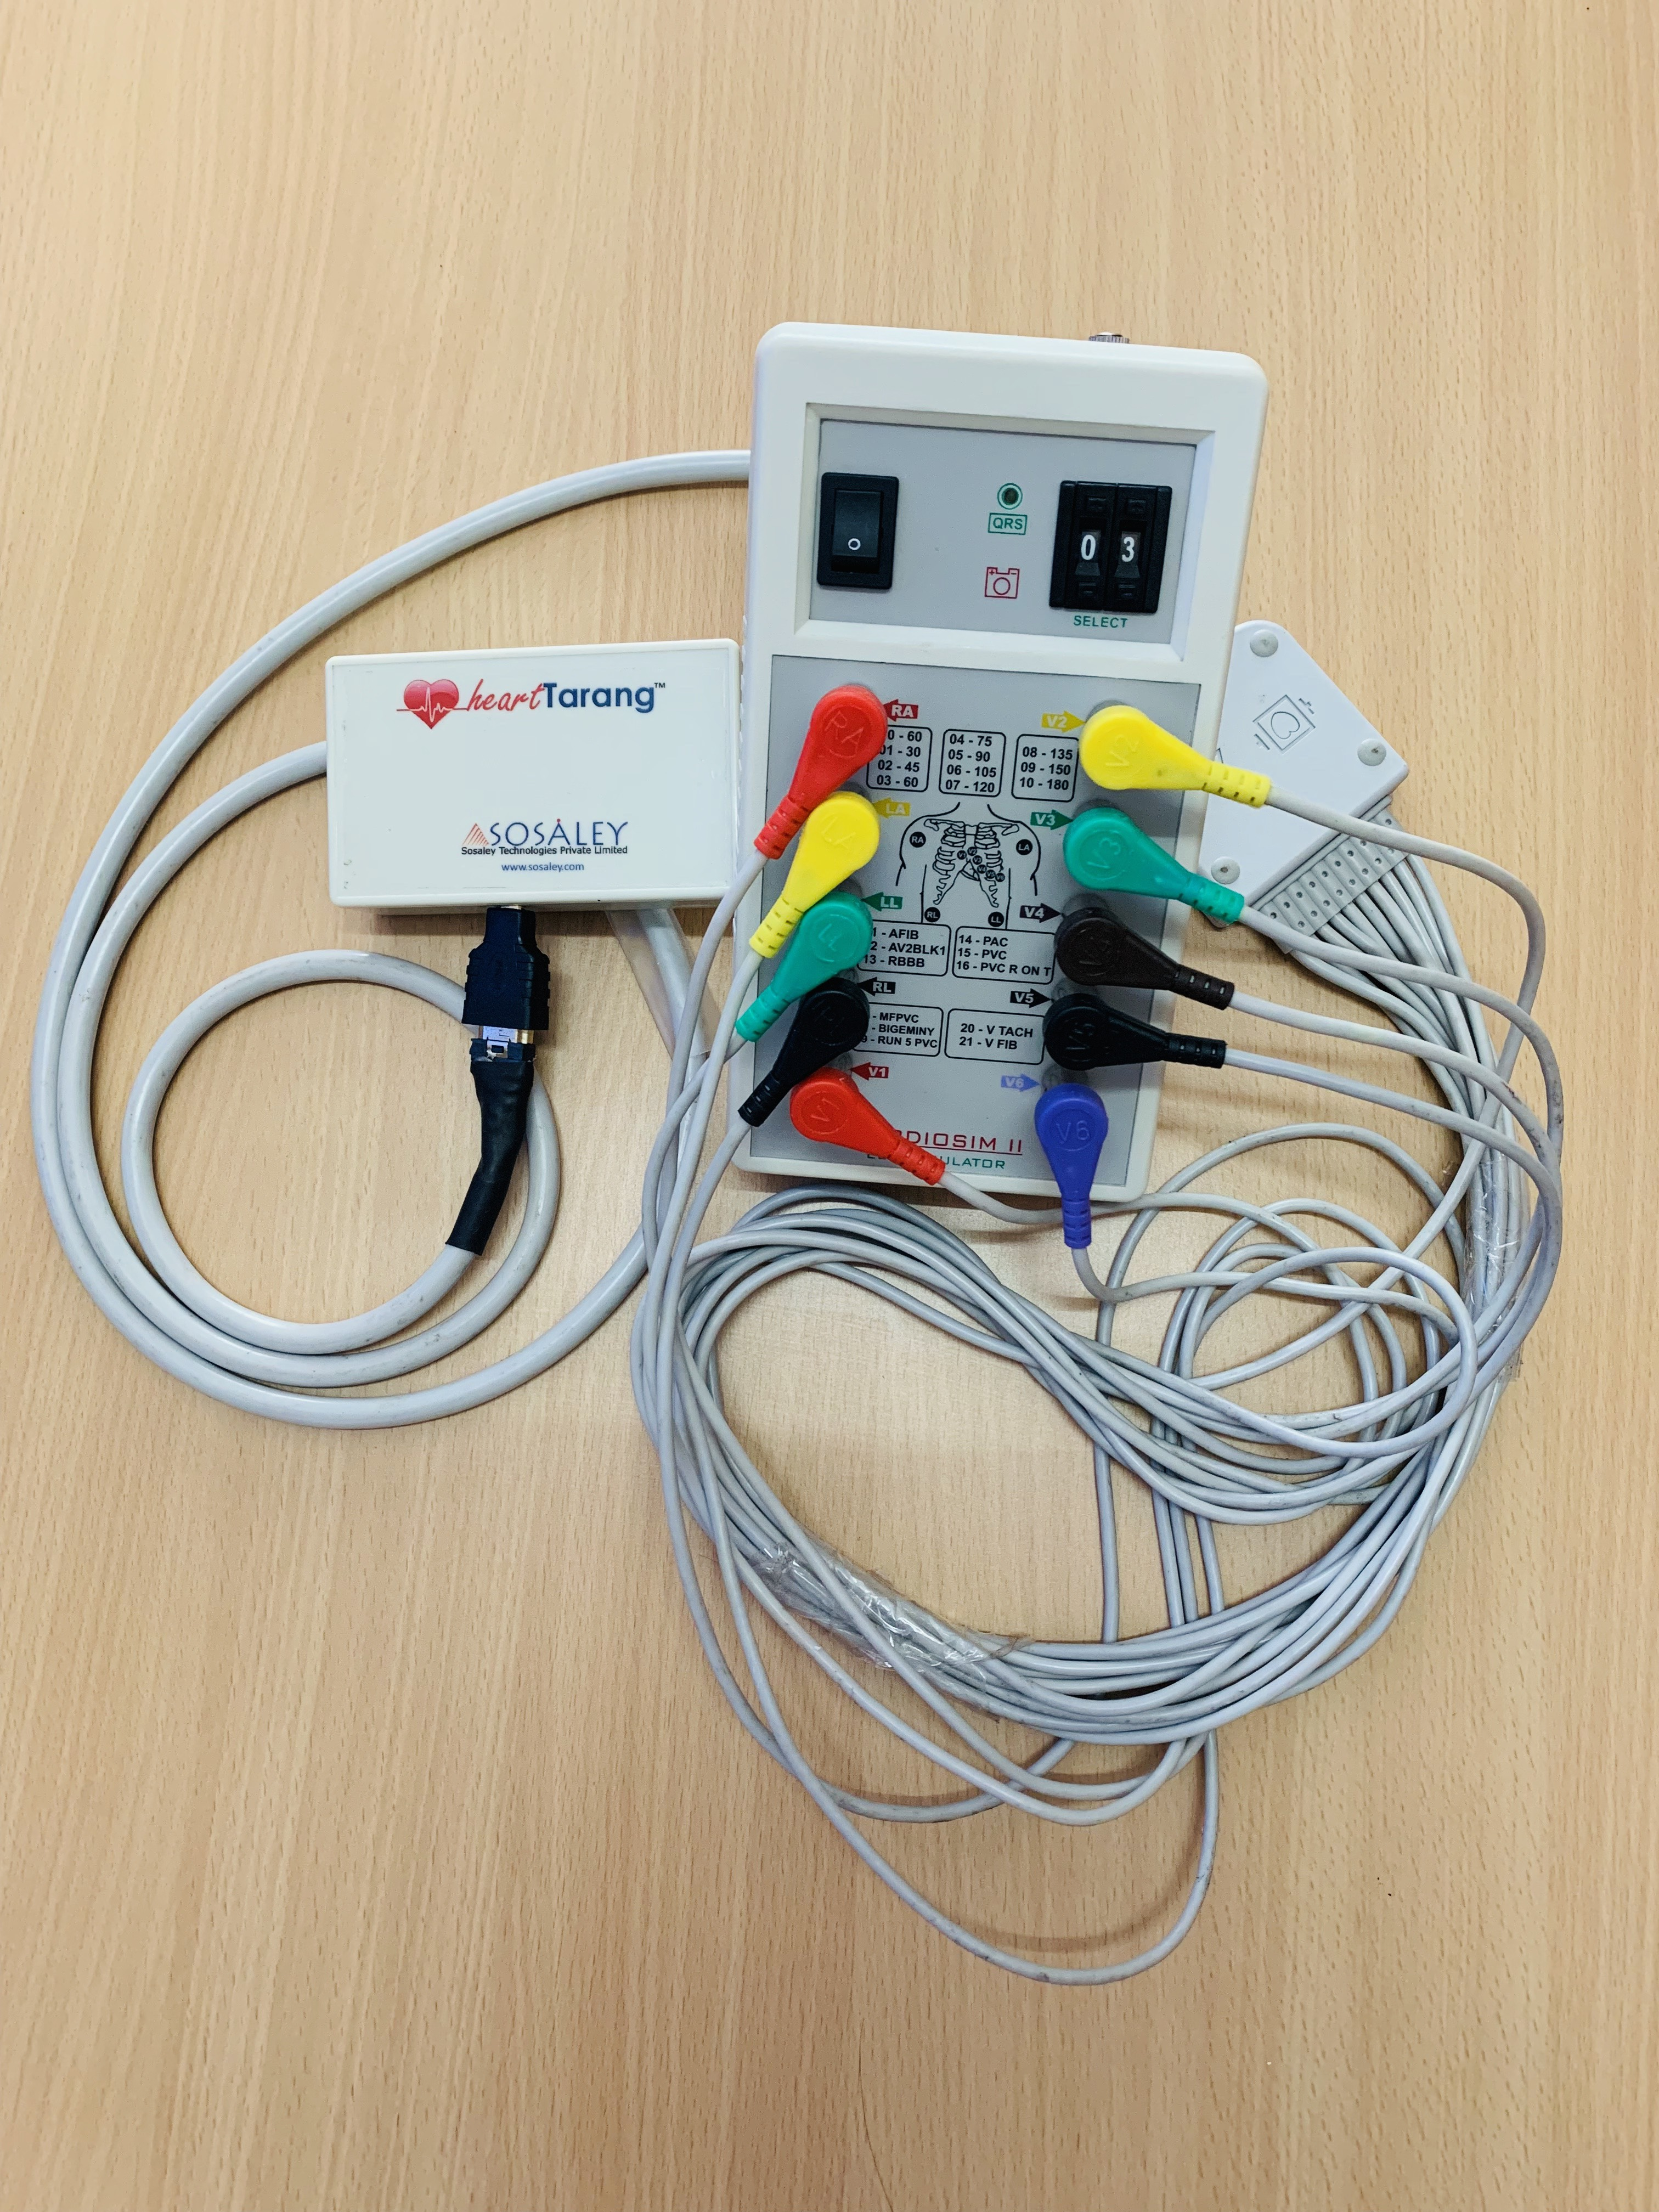 sosaley wireless ecg kit